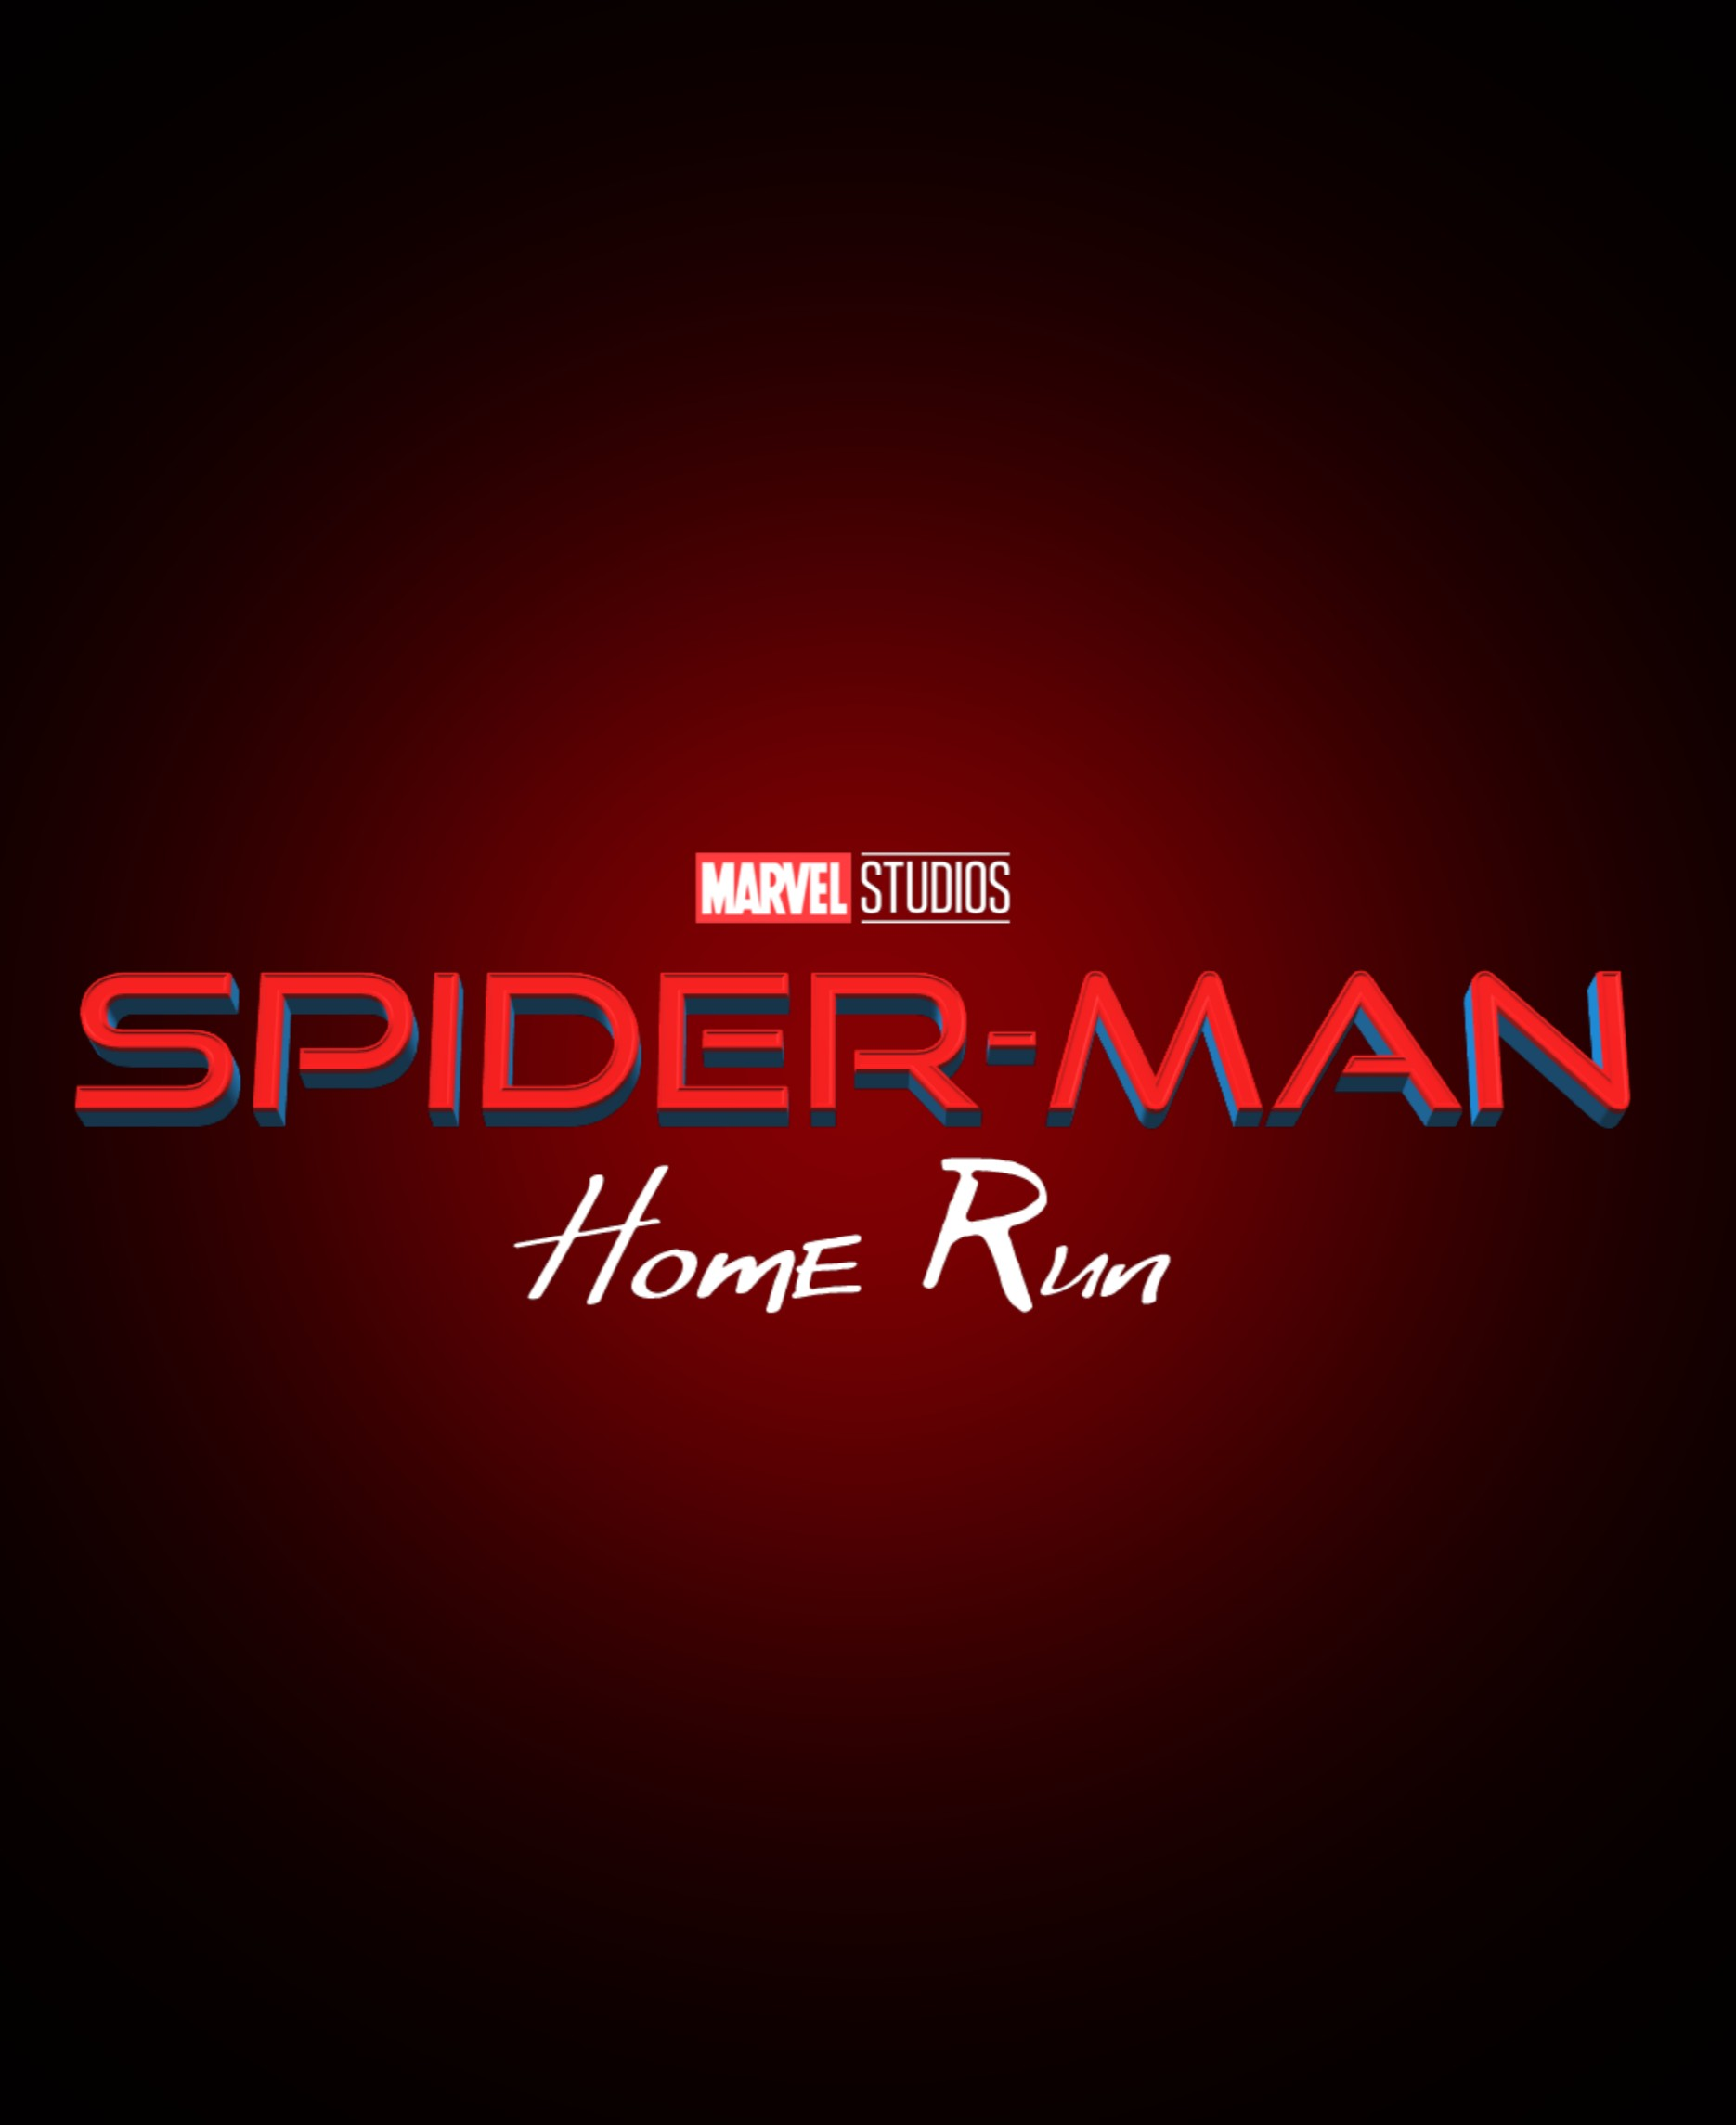 Spider-Man 3 Potential title (NOT OFFICIAL) by JT00567 on DeviantArt